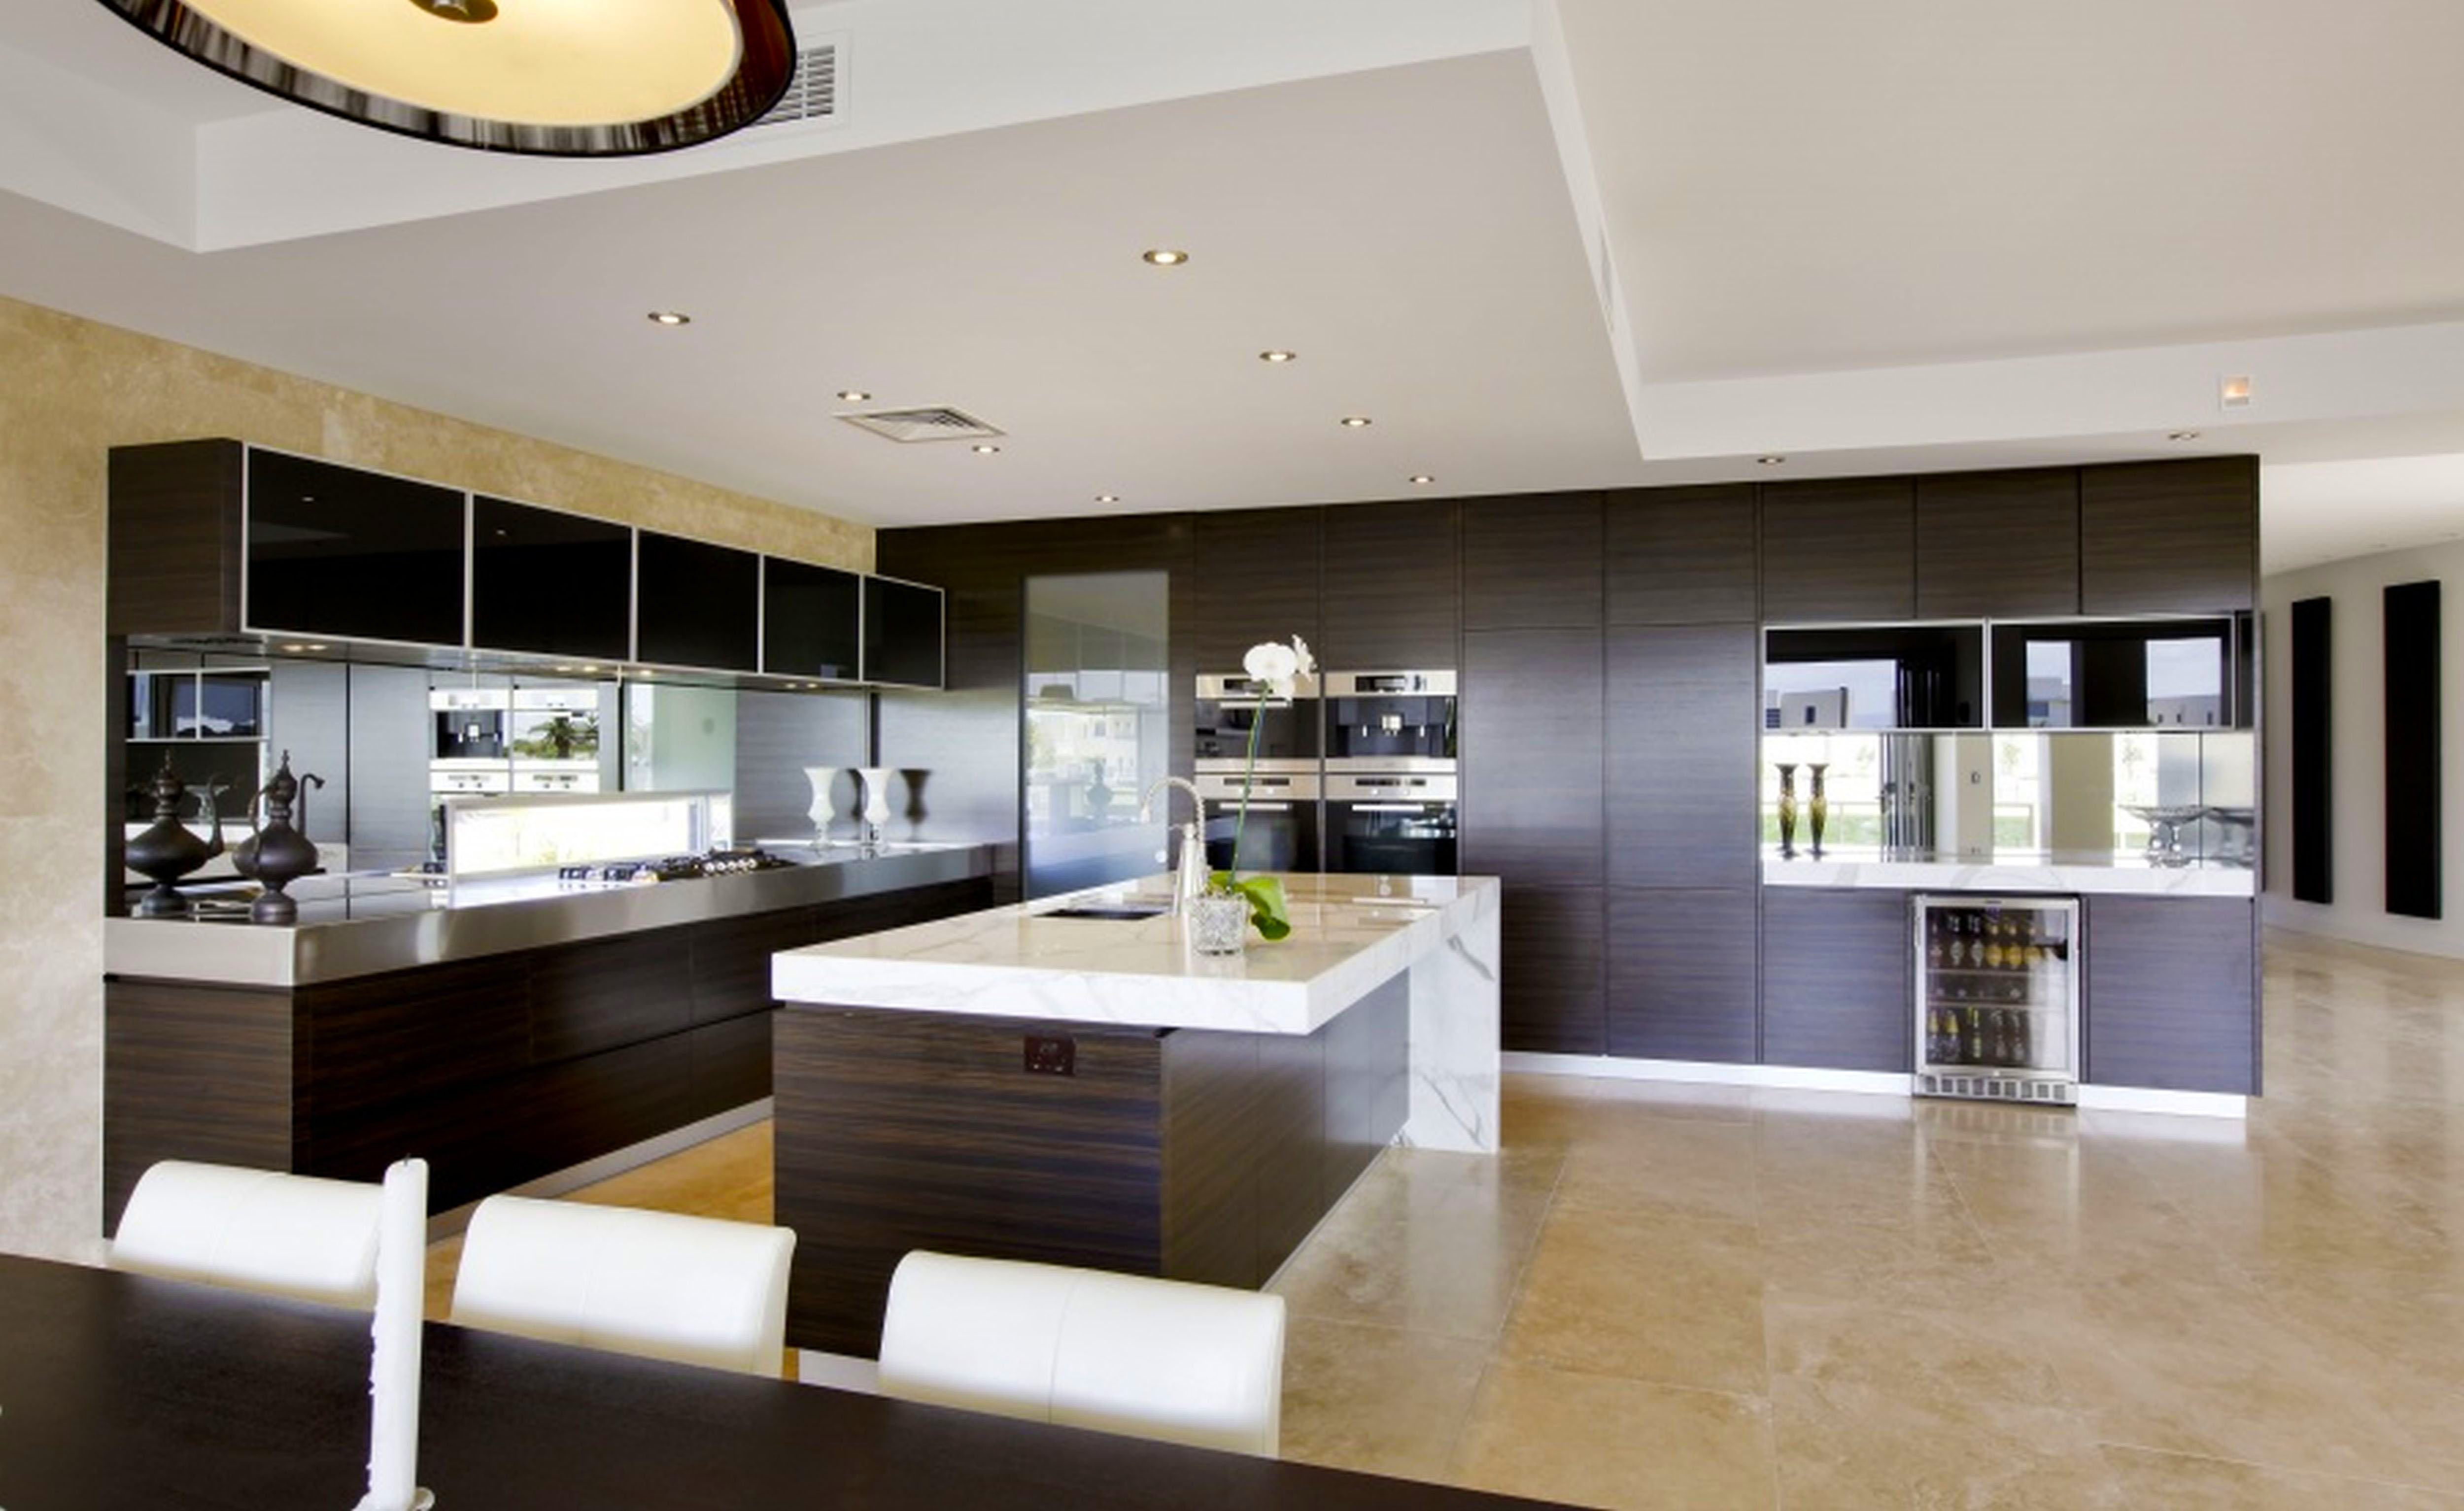 How to Remodel a Contemporary Kitchen Designs | Roy Home ... on Modern Kitchen Design Ideas  id=47749